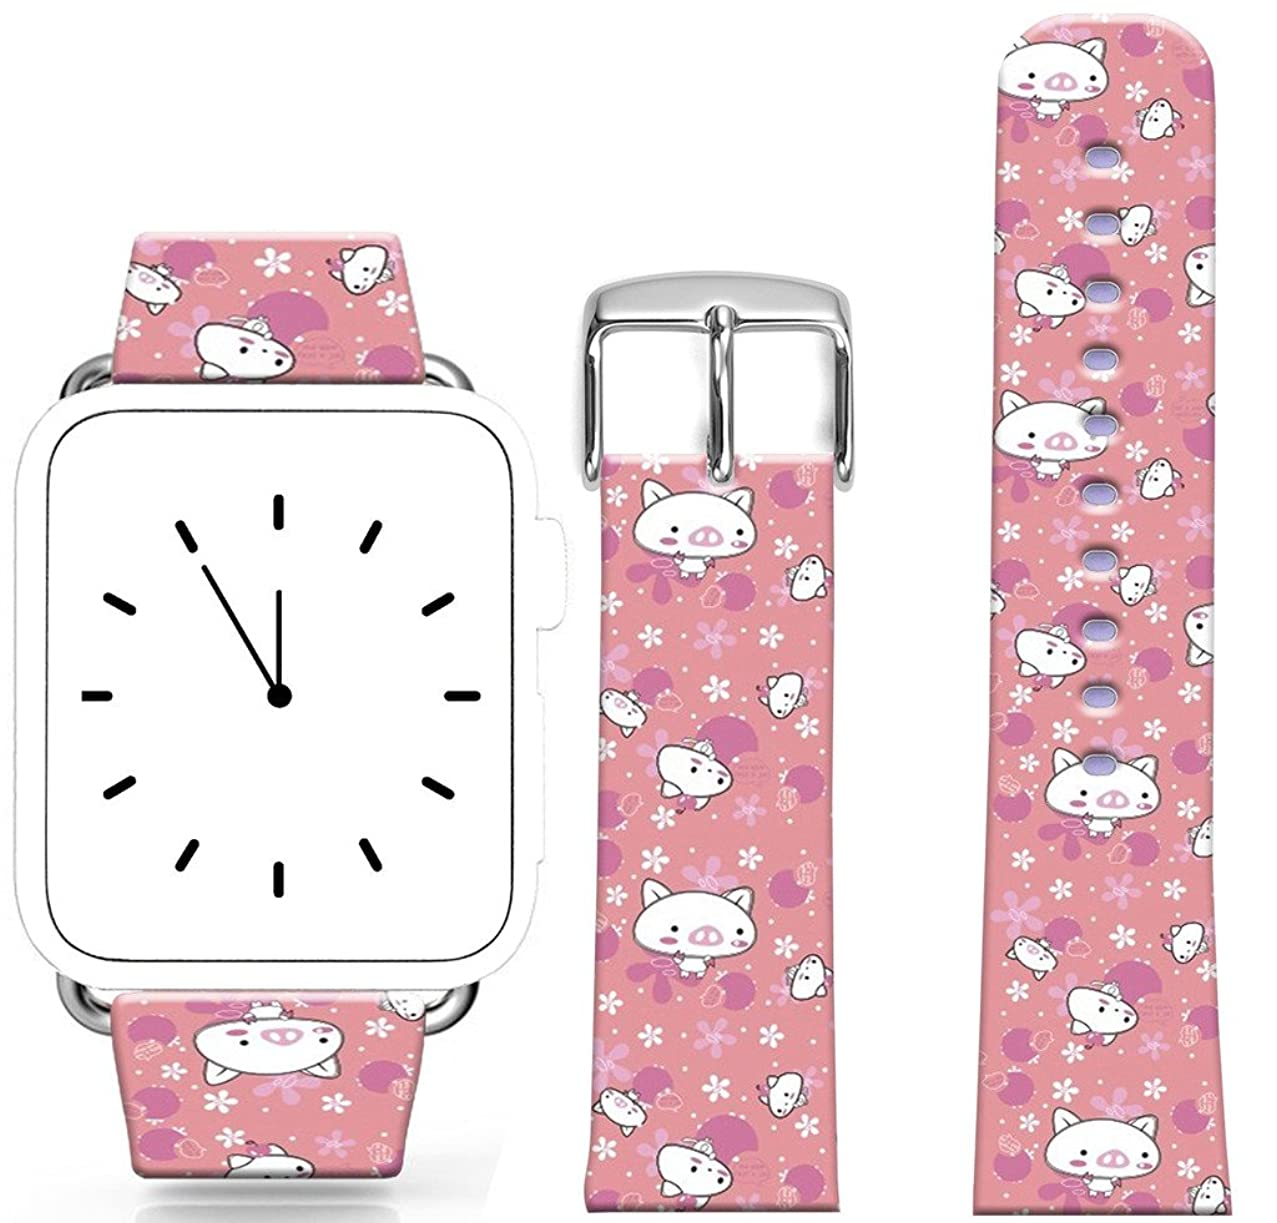 Band for Iwatch 38mm Series 1/2/3 / Topgraph Compatible Replacement Leather Strap for Apple Watch Kawaii Little White Pigs and Flowers (with Metal Clasp Together)